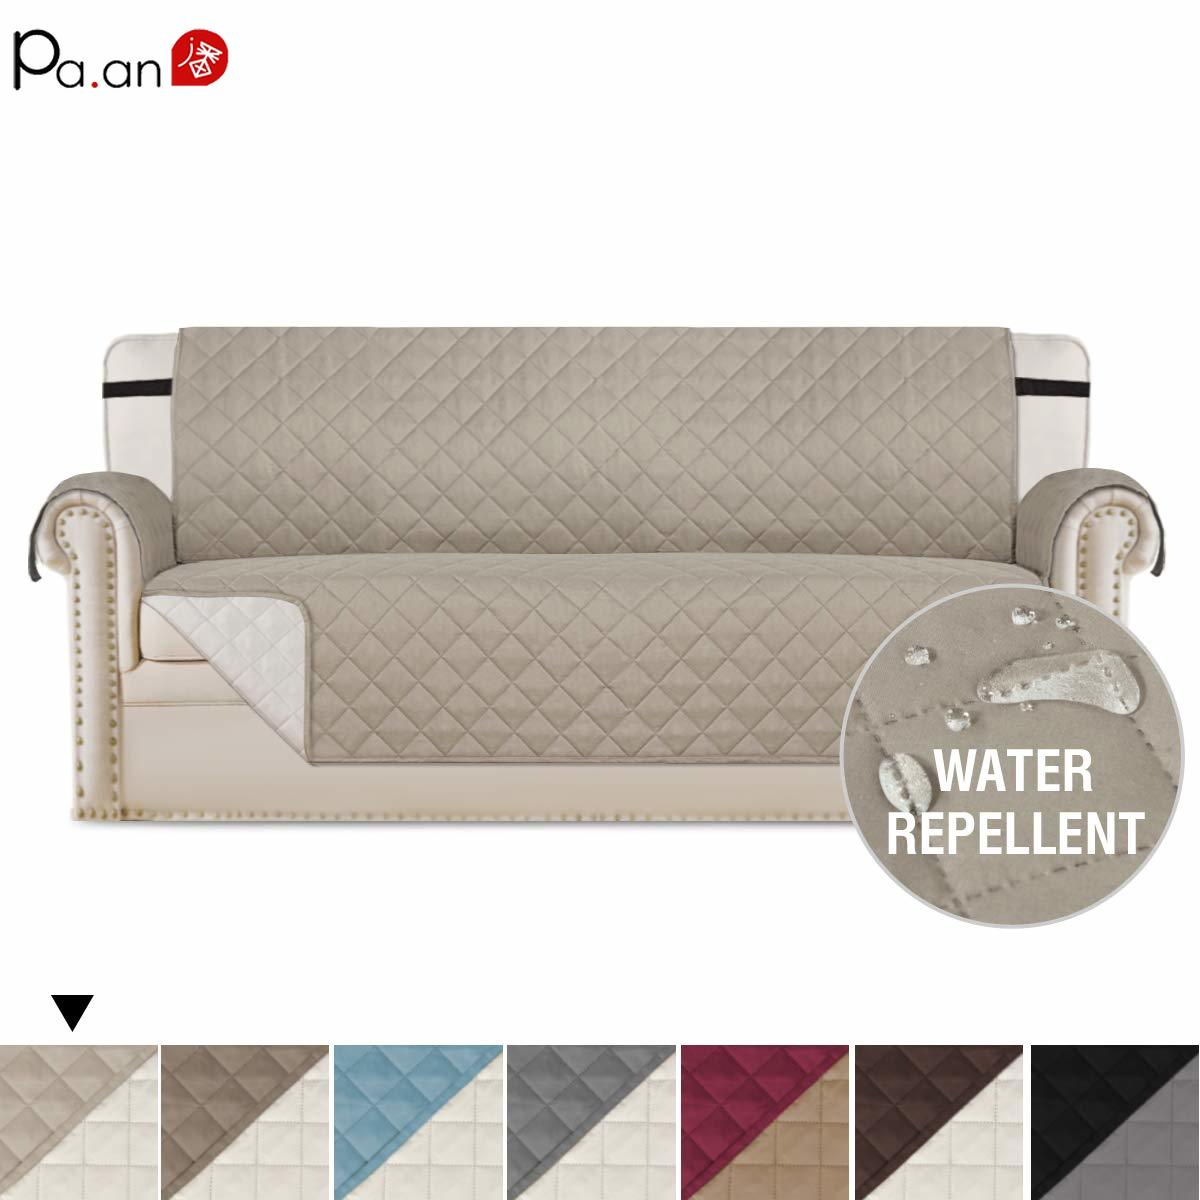 Pa.an One piece Sofa Cover Pets Protect Covers Slipcover Anti Slip Furniture Covers Set T L Shaped Pongee Waterproof Easyclean